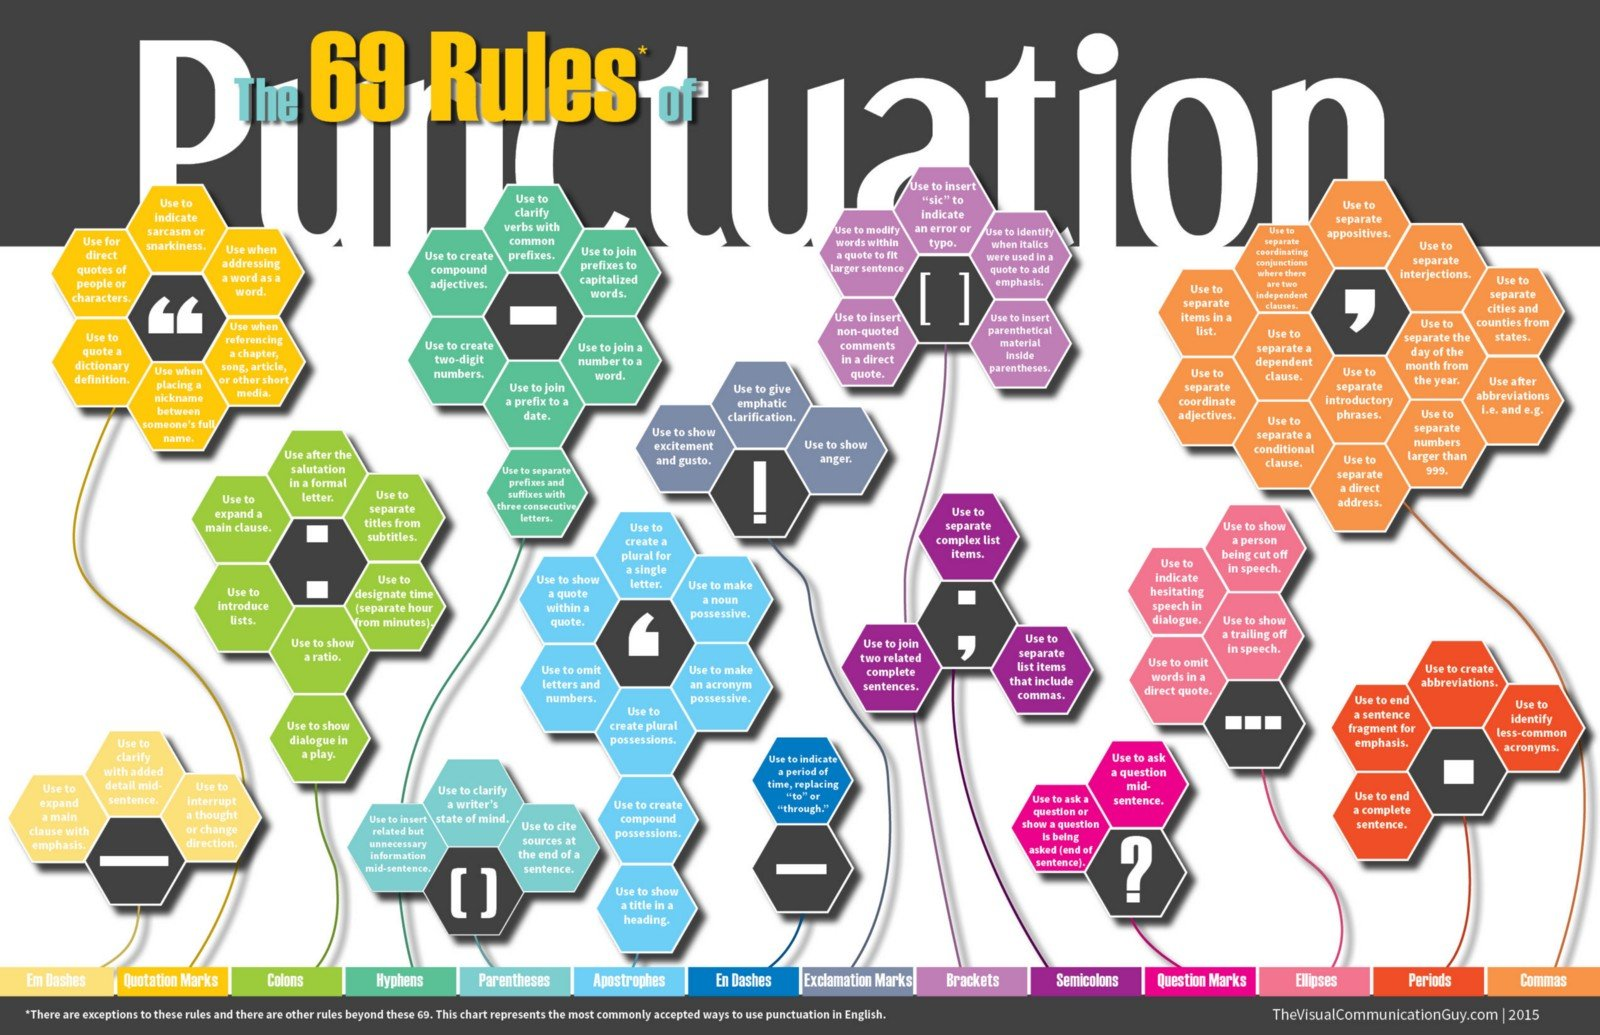 69 punctuation rules.jpg